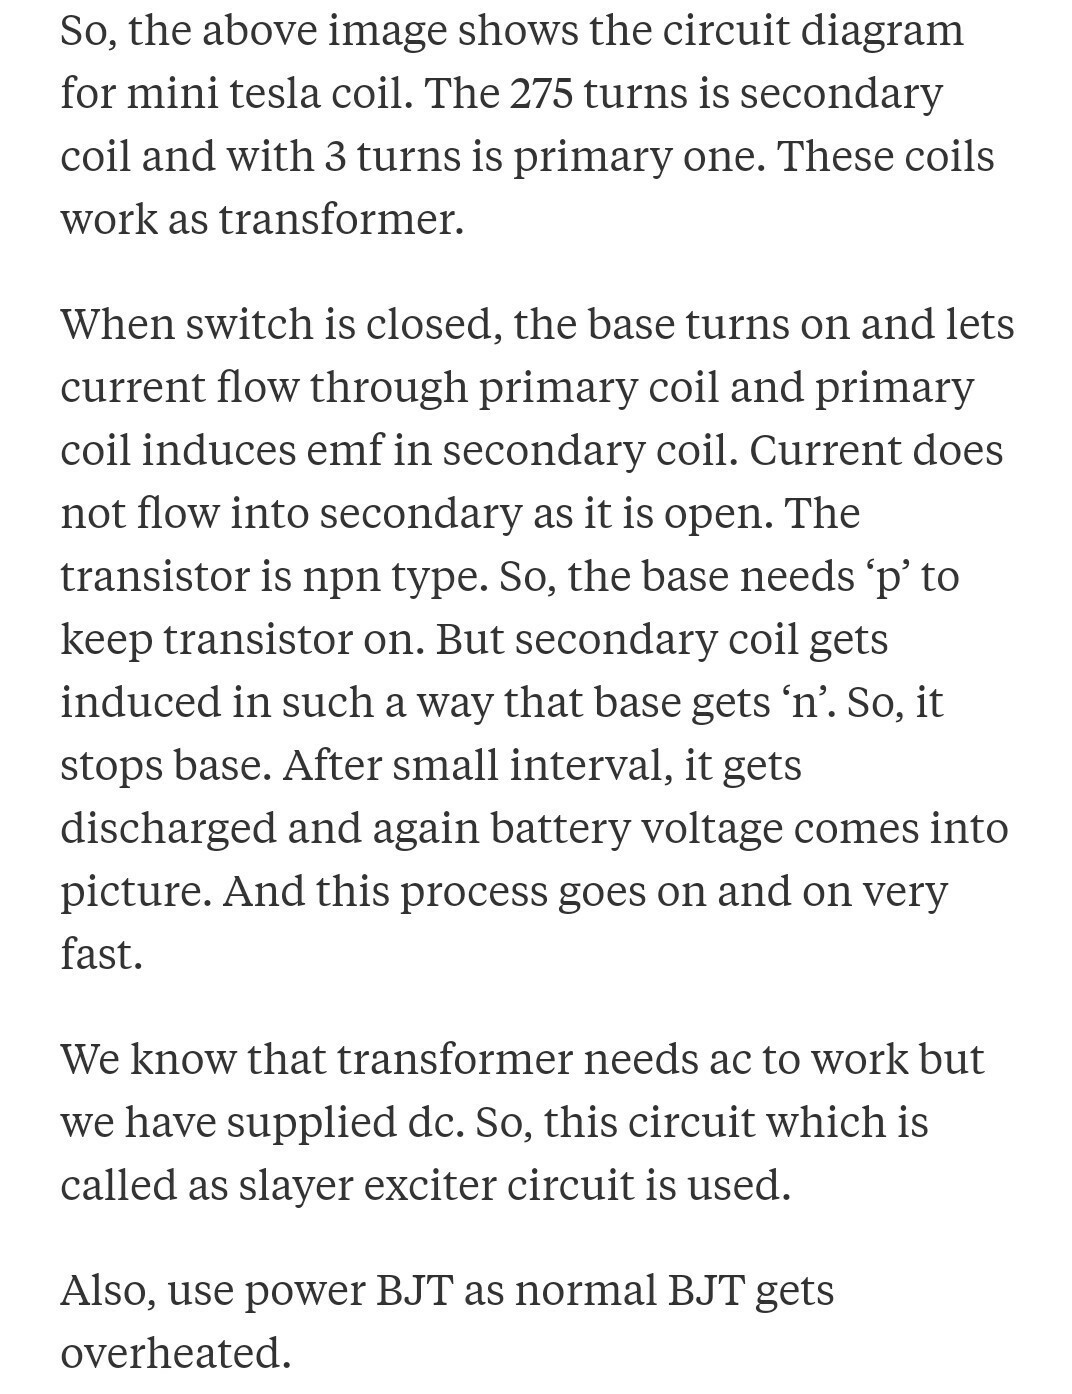 Can someone please tell me the working of mini tesla coil